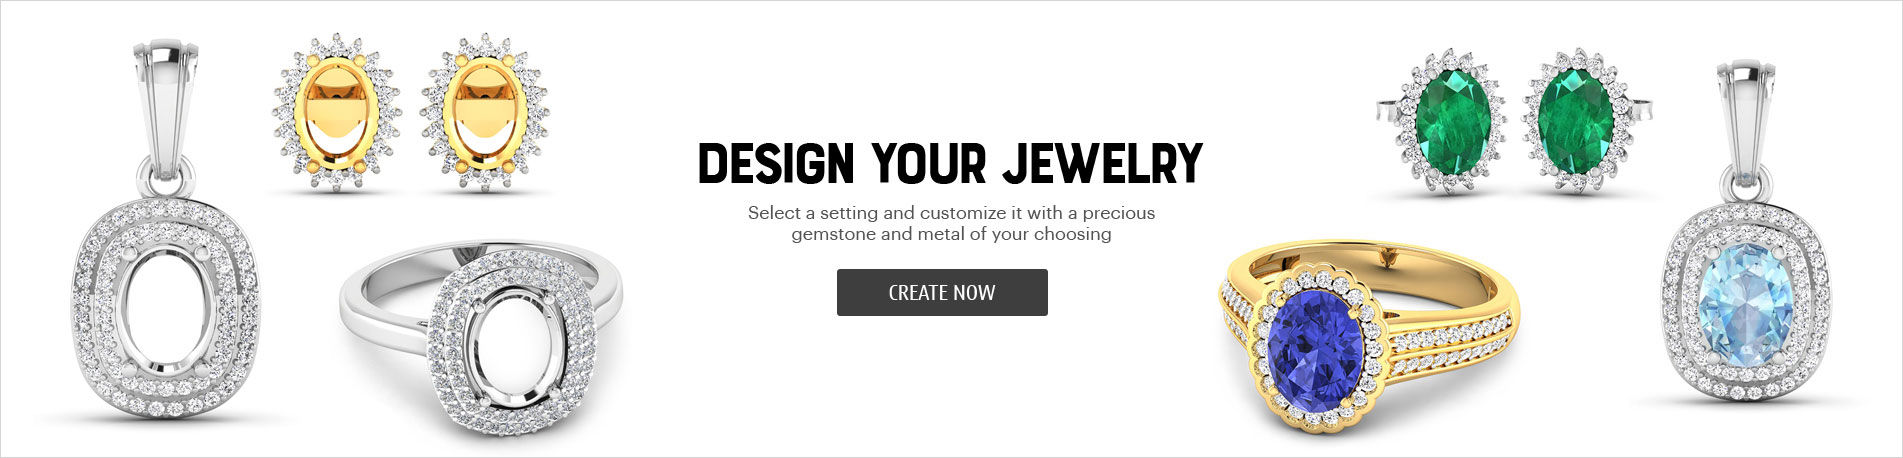 Design your Jewelry